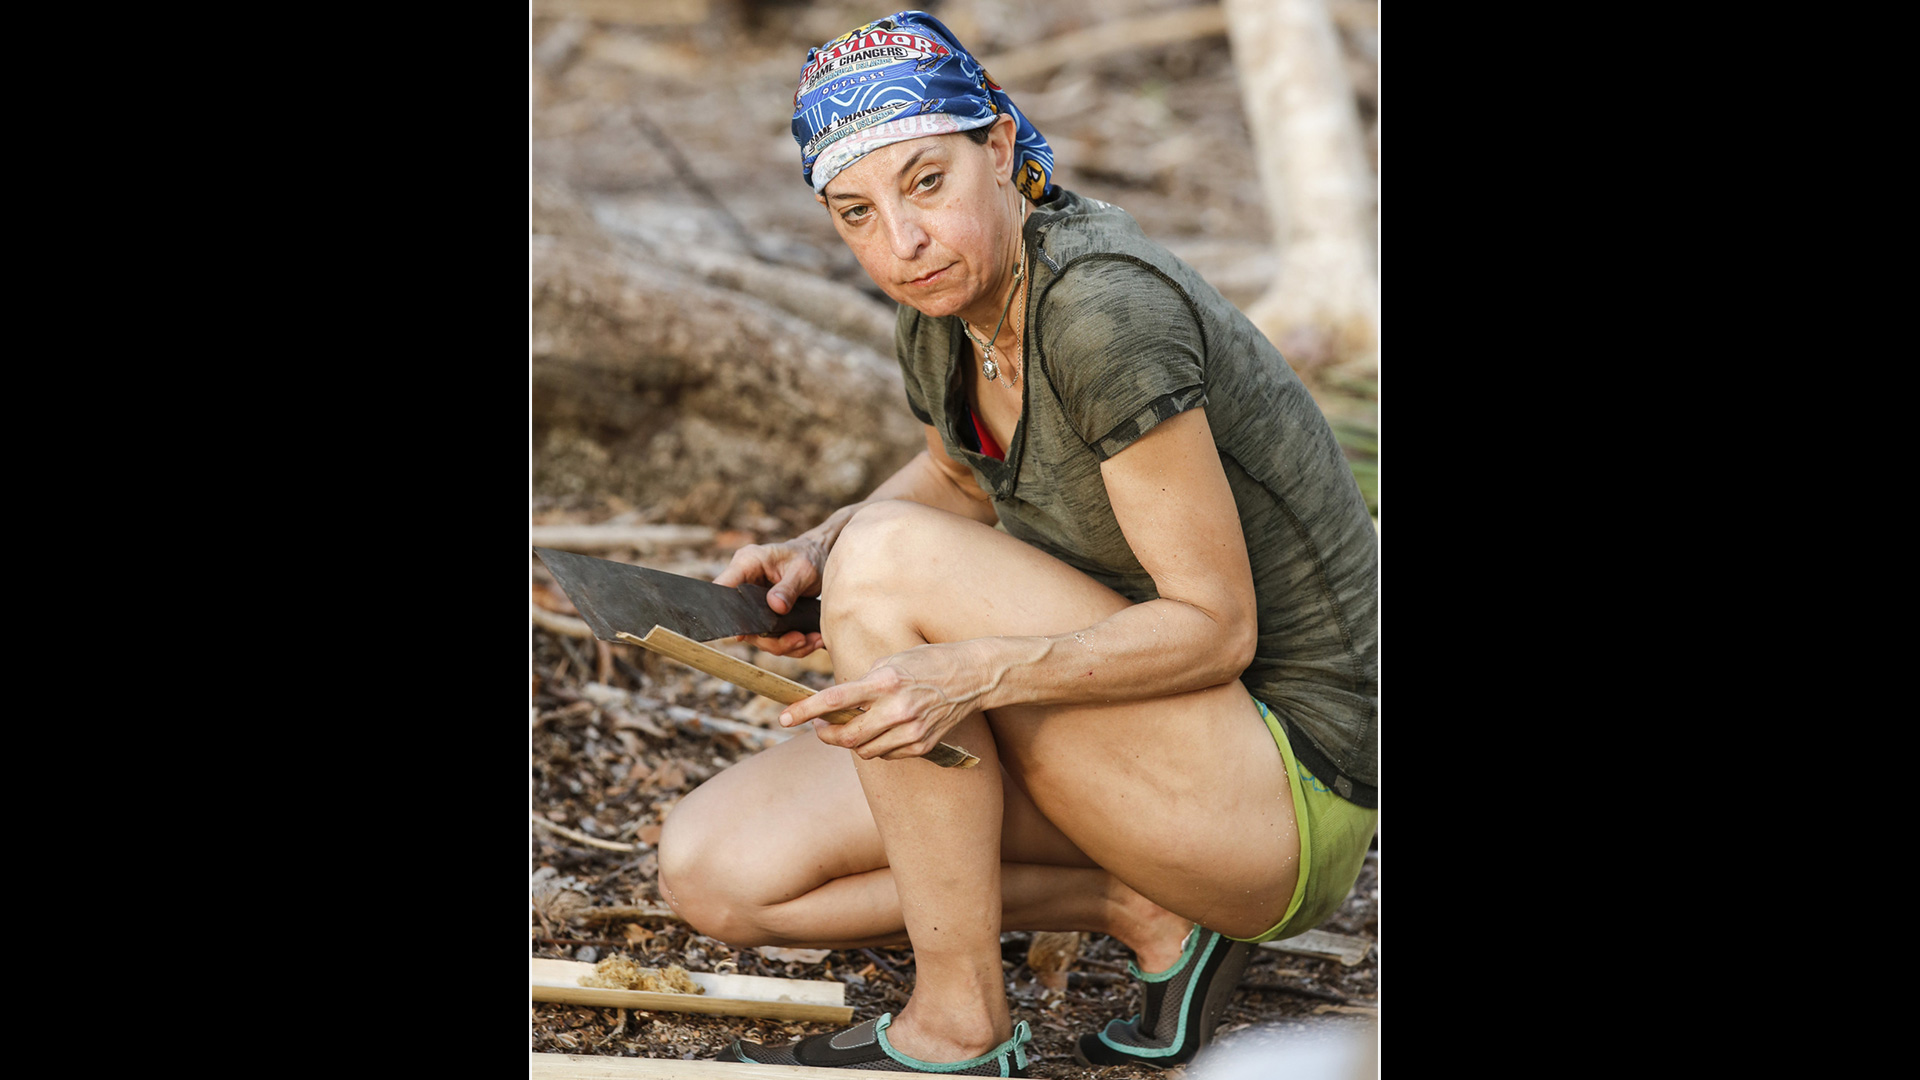 Survivor: Kaoh Rong former castaway Debbie Wanner kneels down and gets to work.